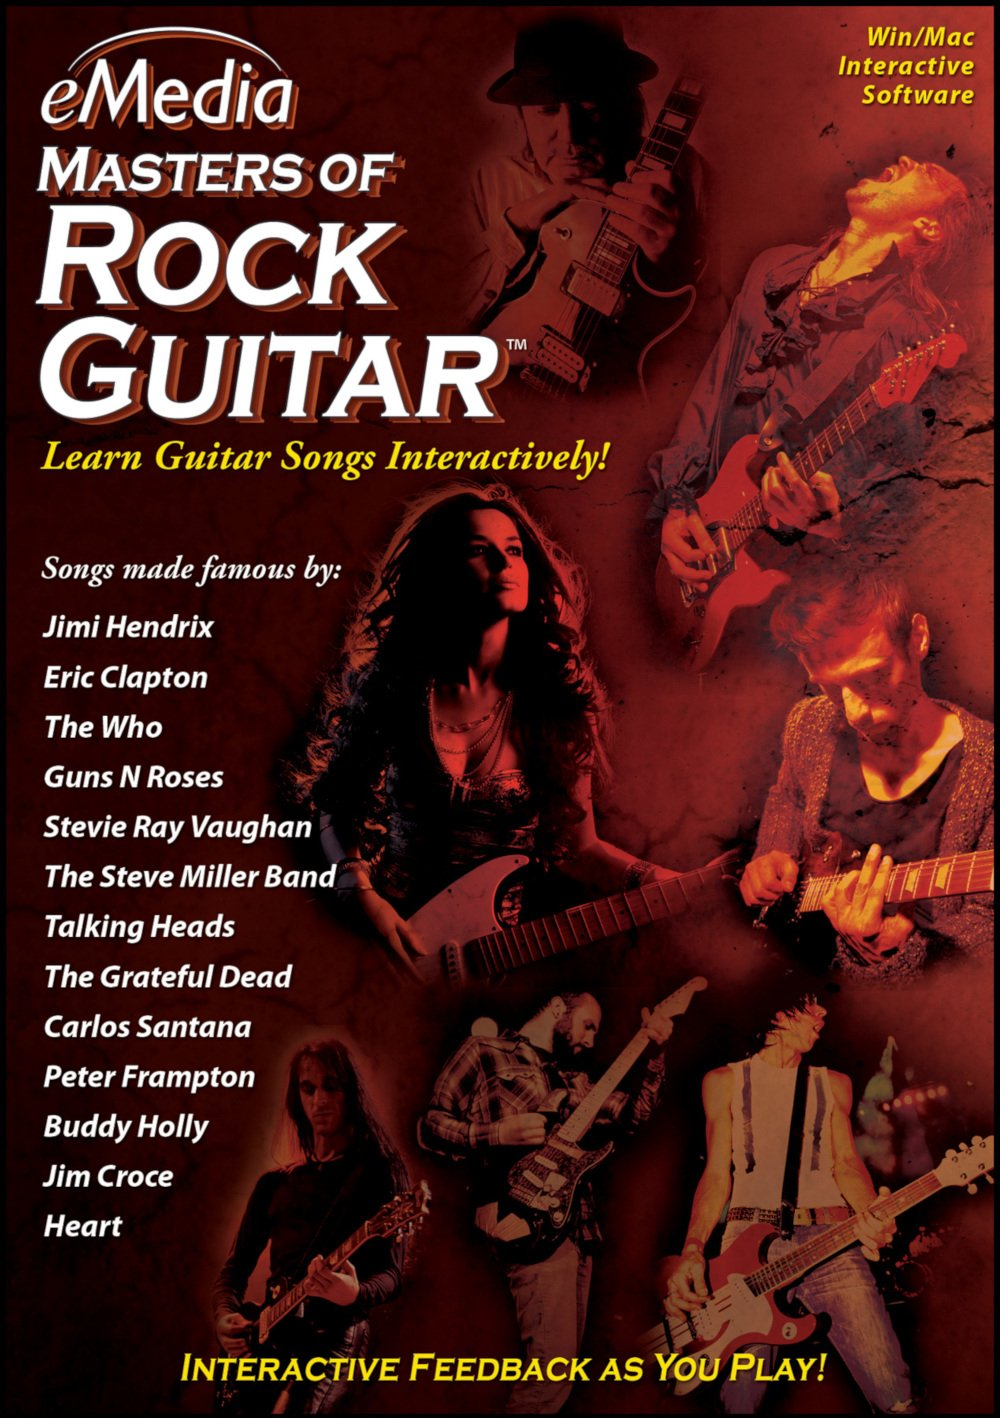 Download rock guitars royalty free sounds for all daws.